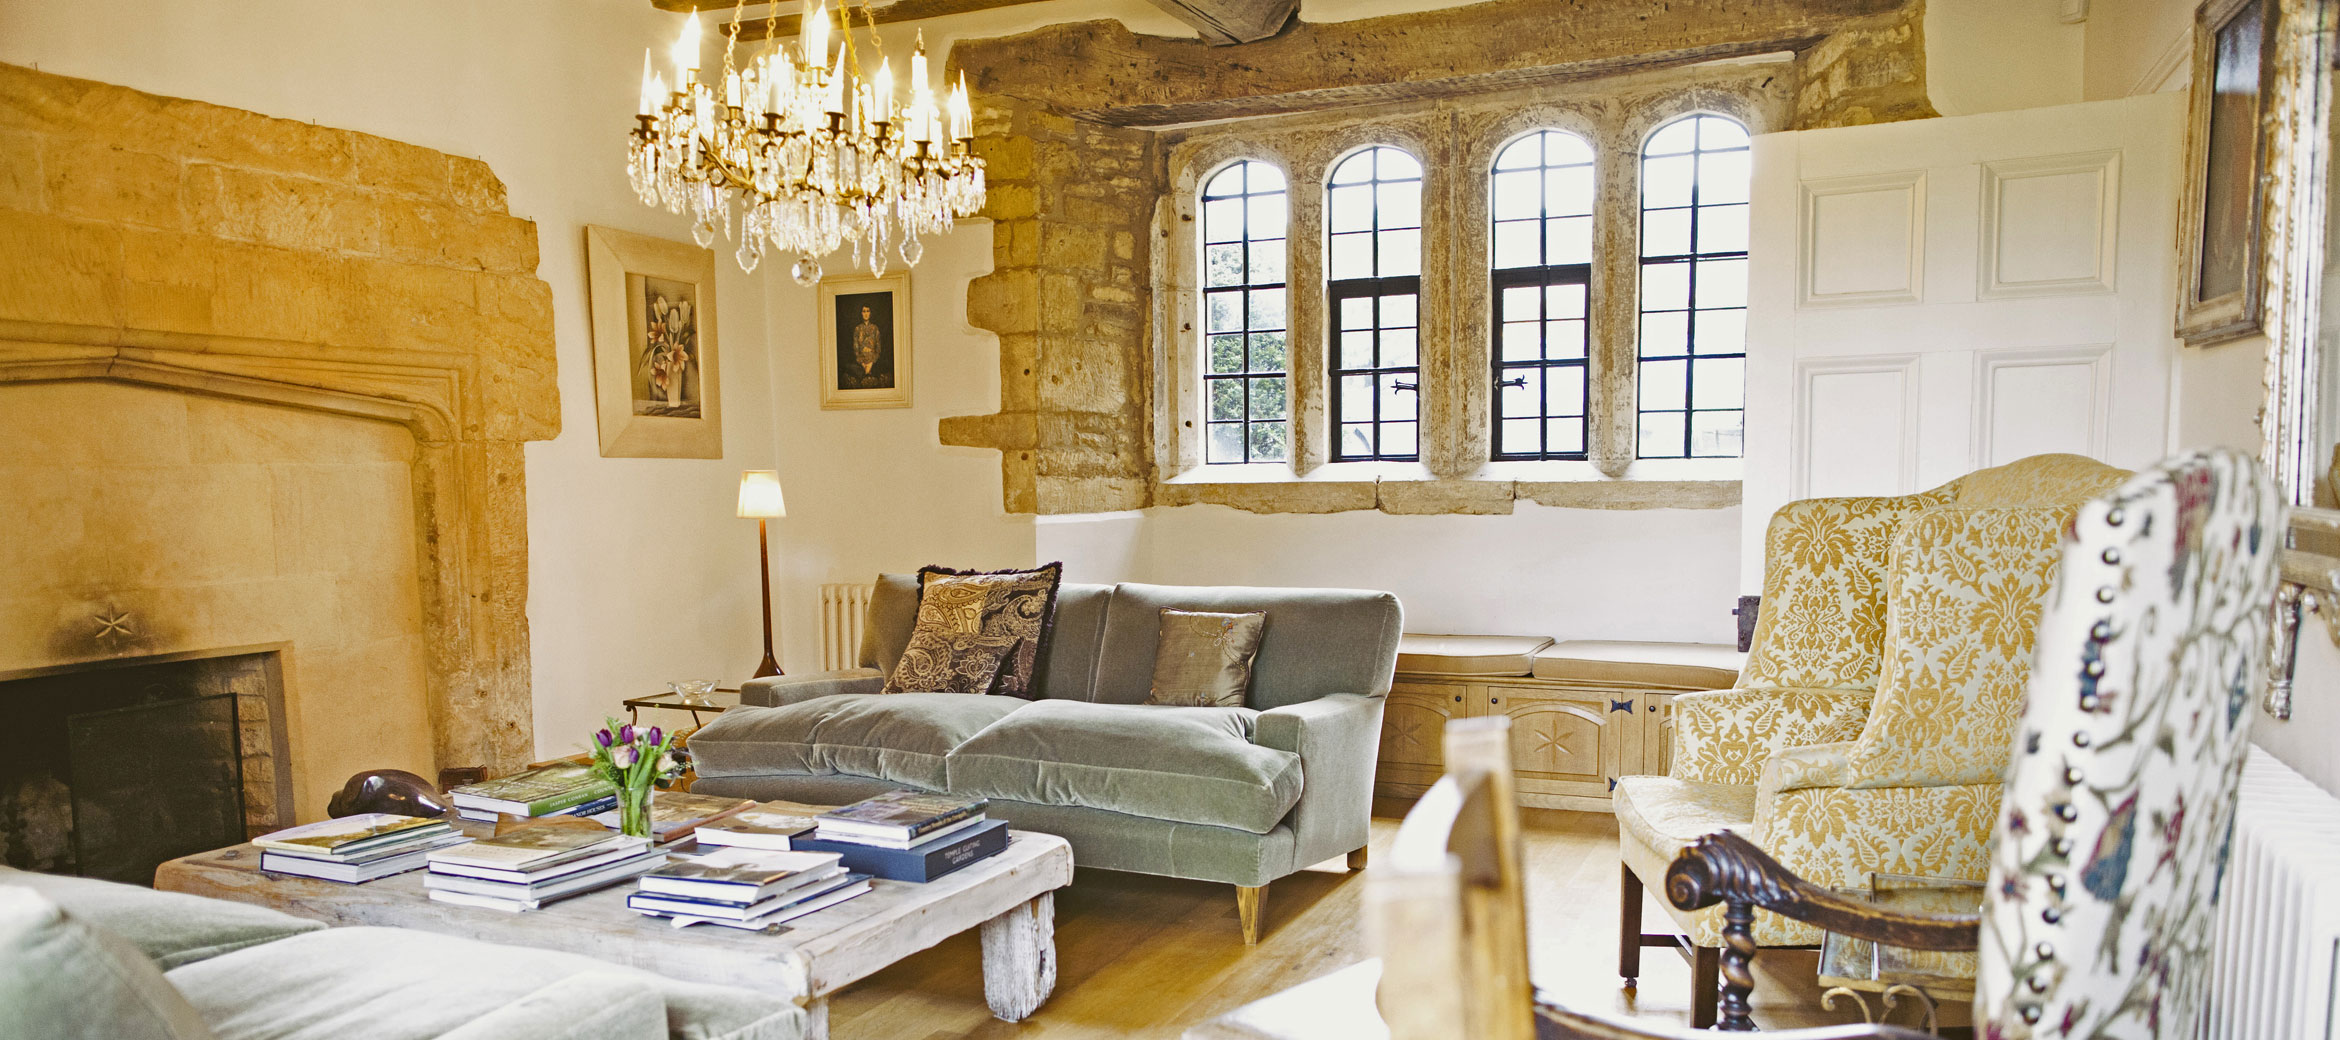 Temple-Guiting-Manor-Drawing-Room